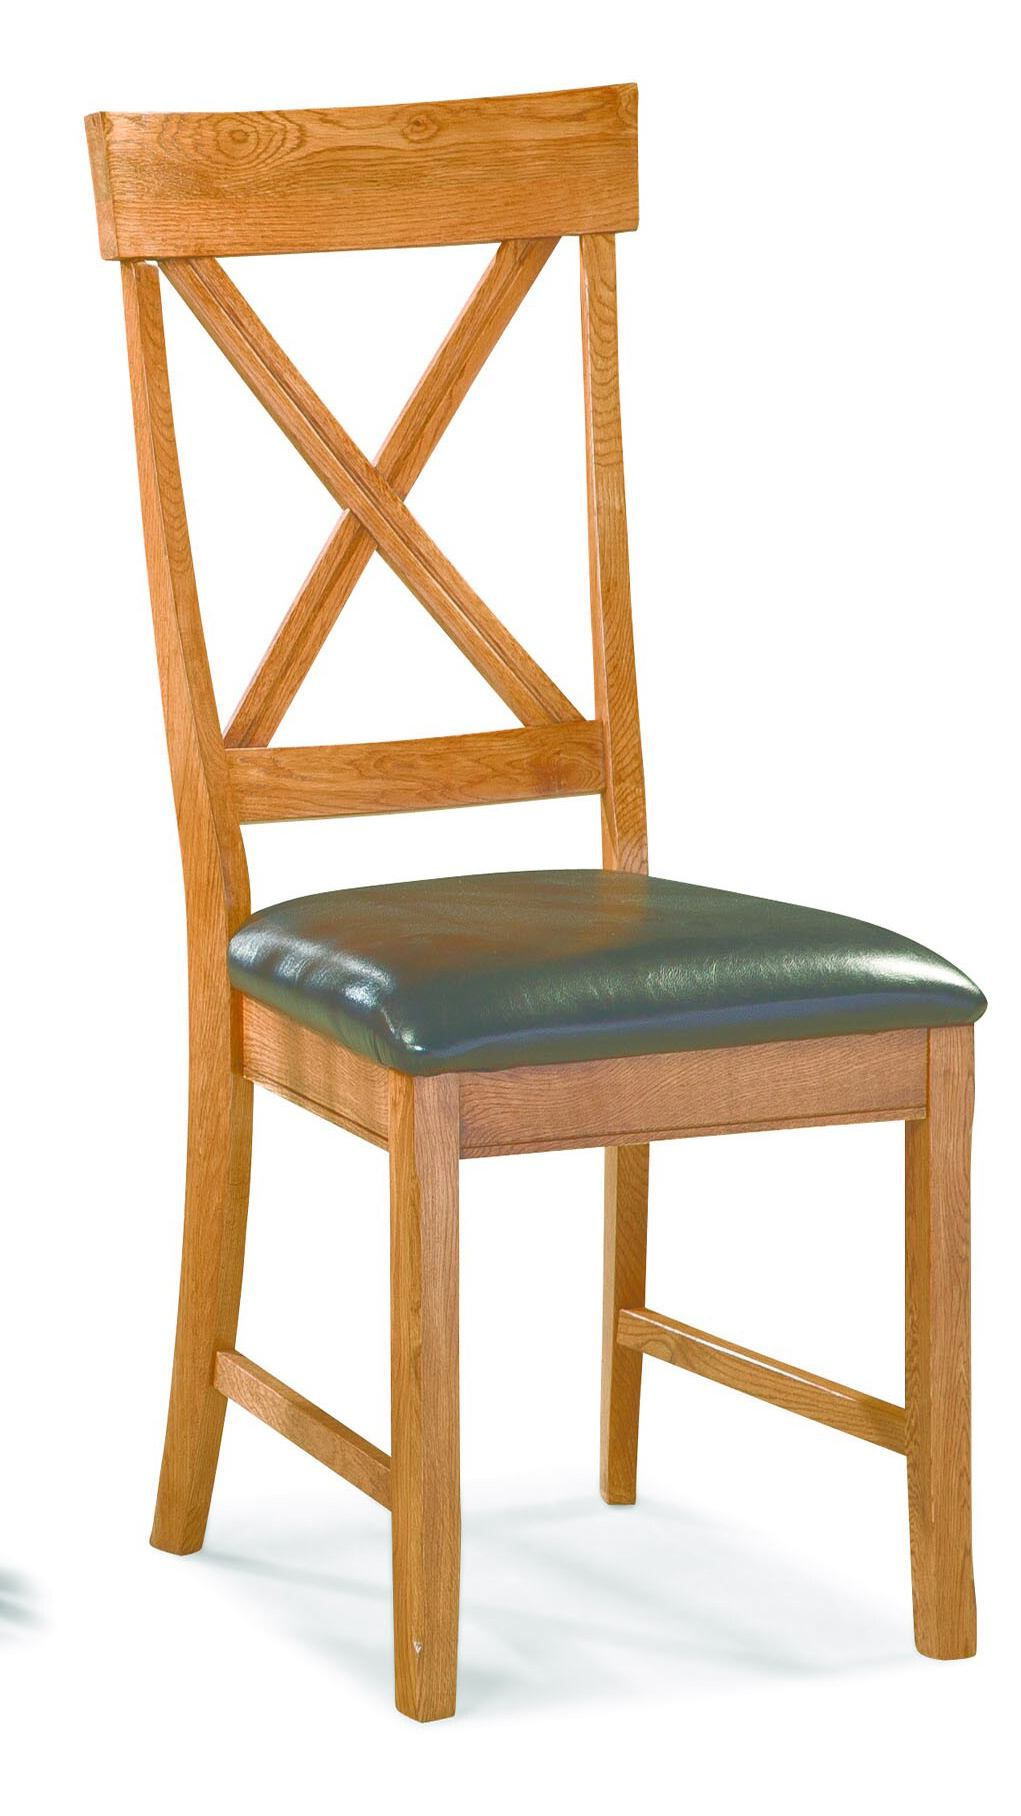 Intercon Furniture Family X-Back Chair in Chestnut (Set of 2)